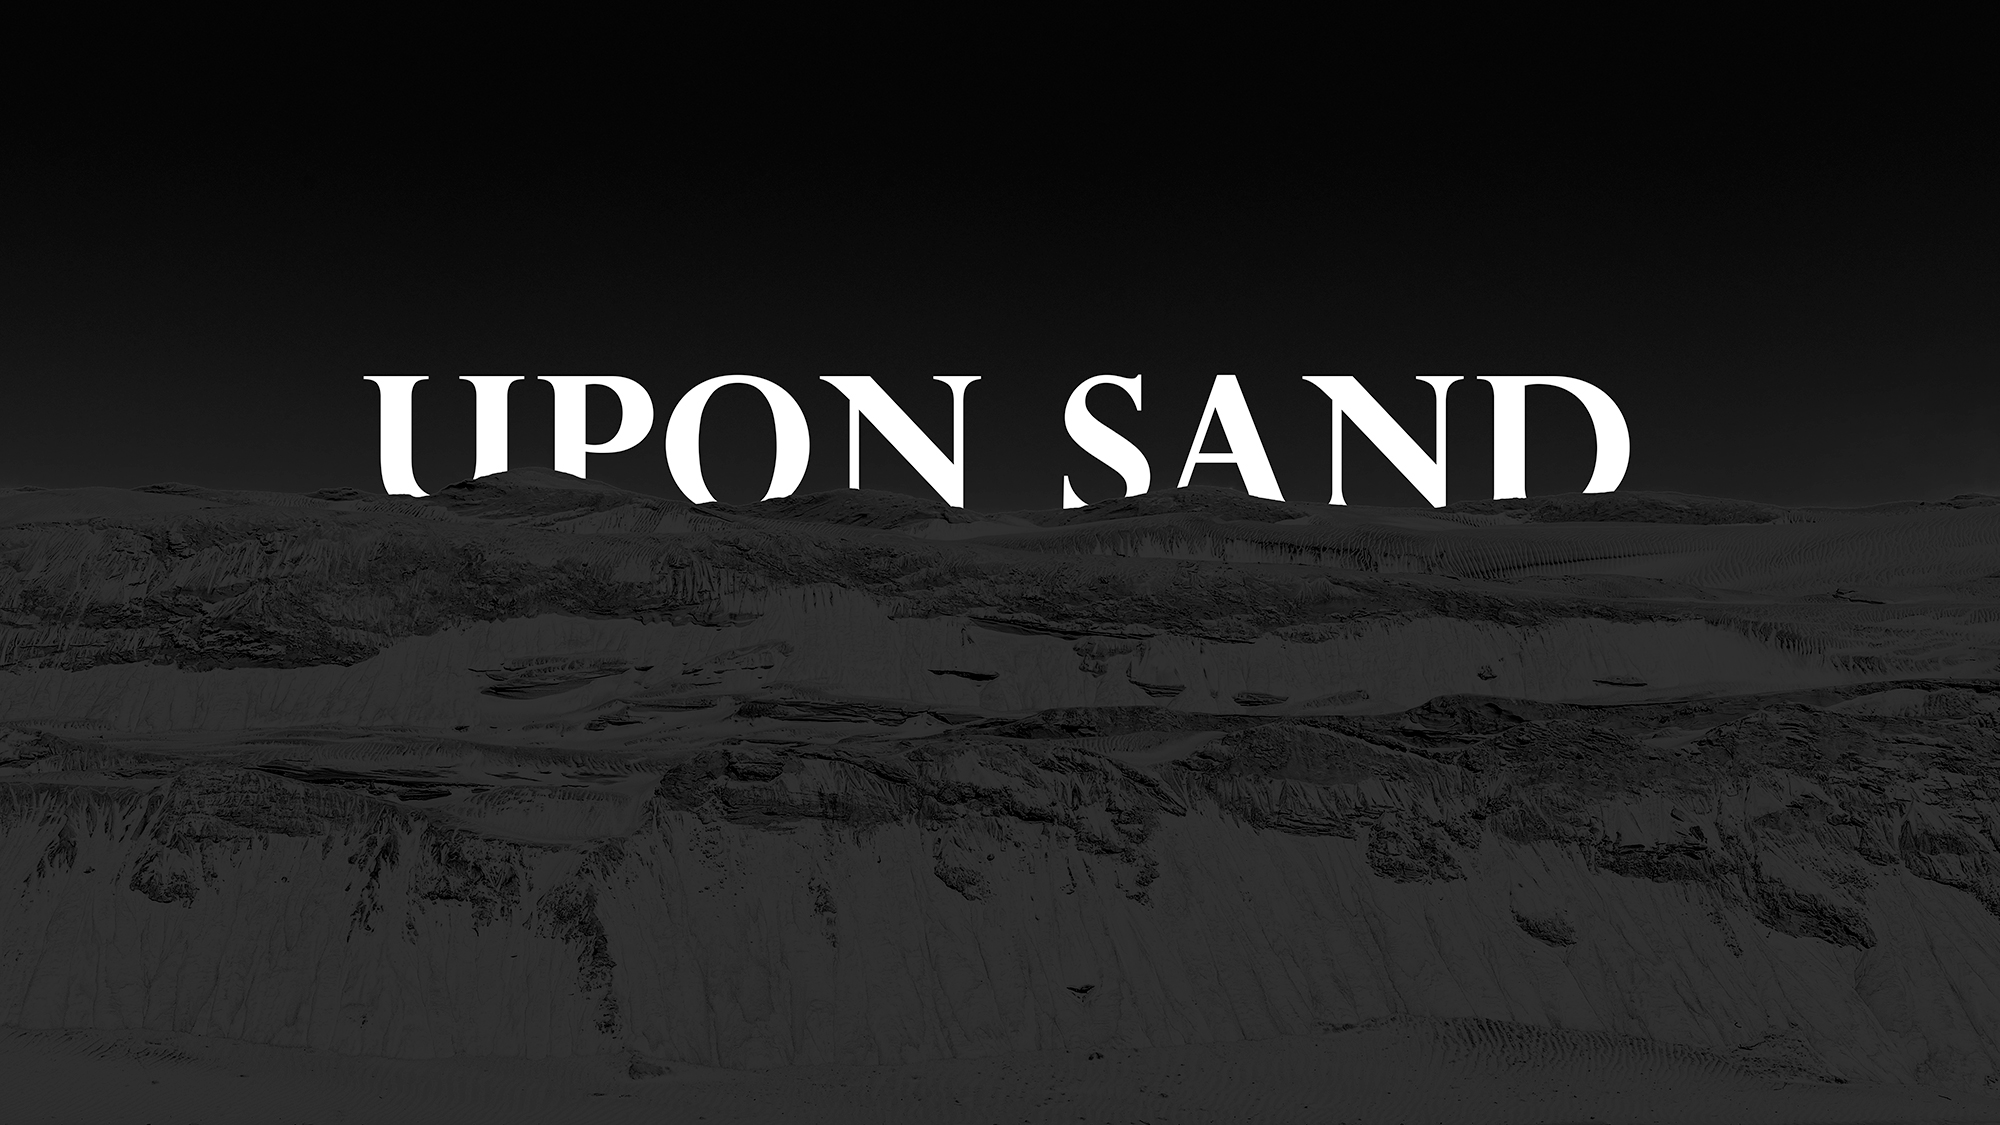 Upon Sand cover Image logo